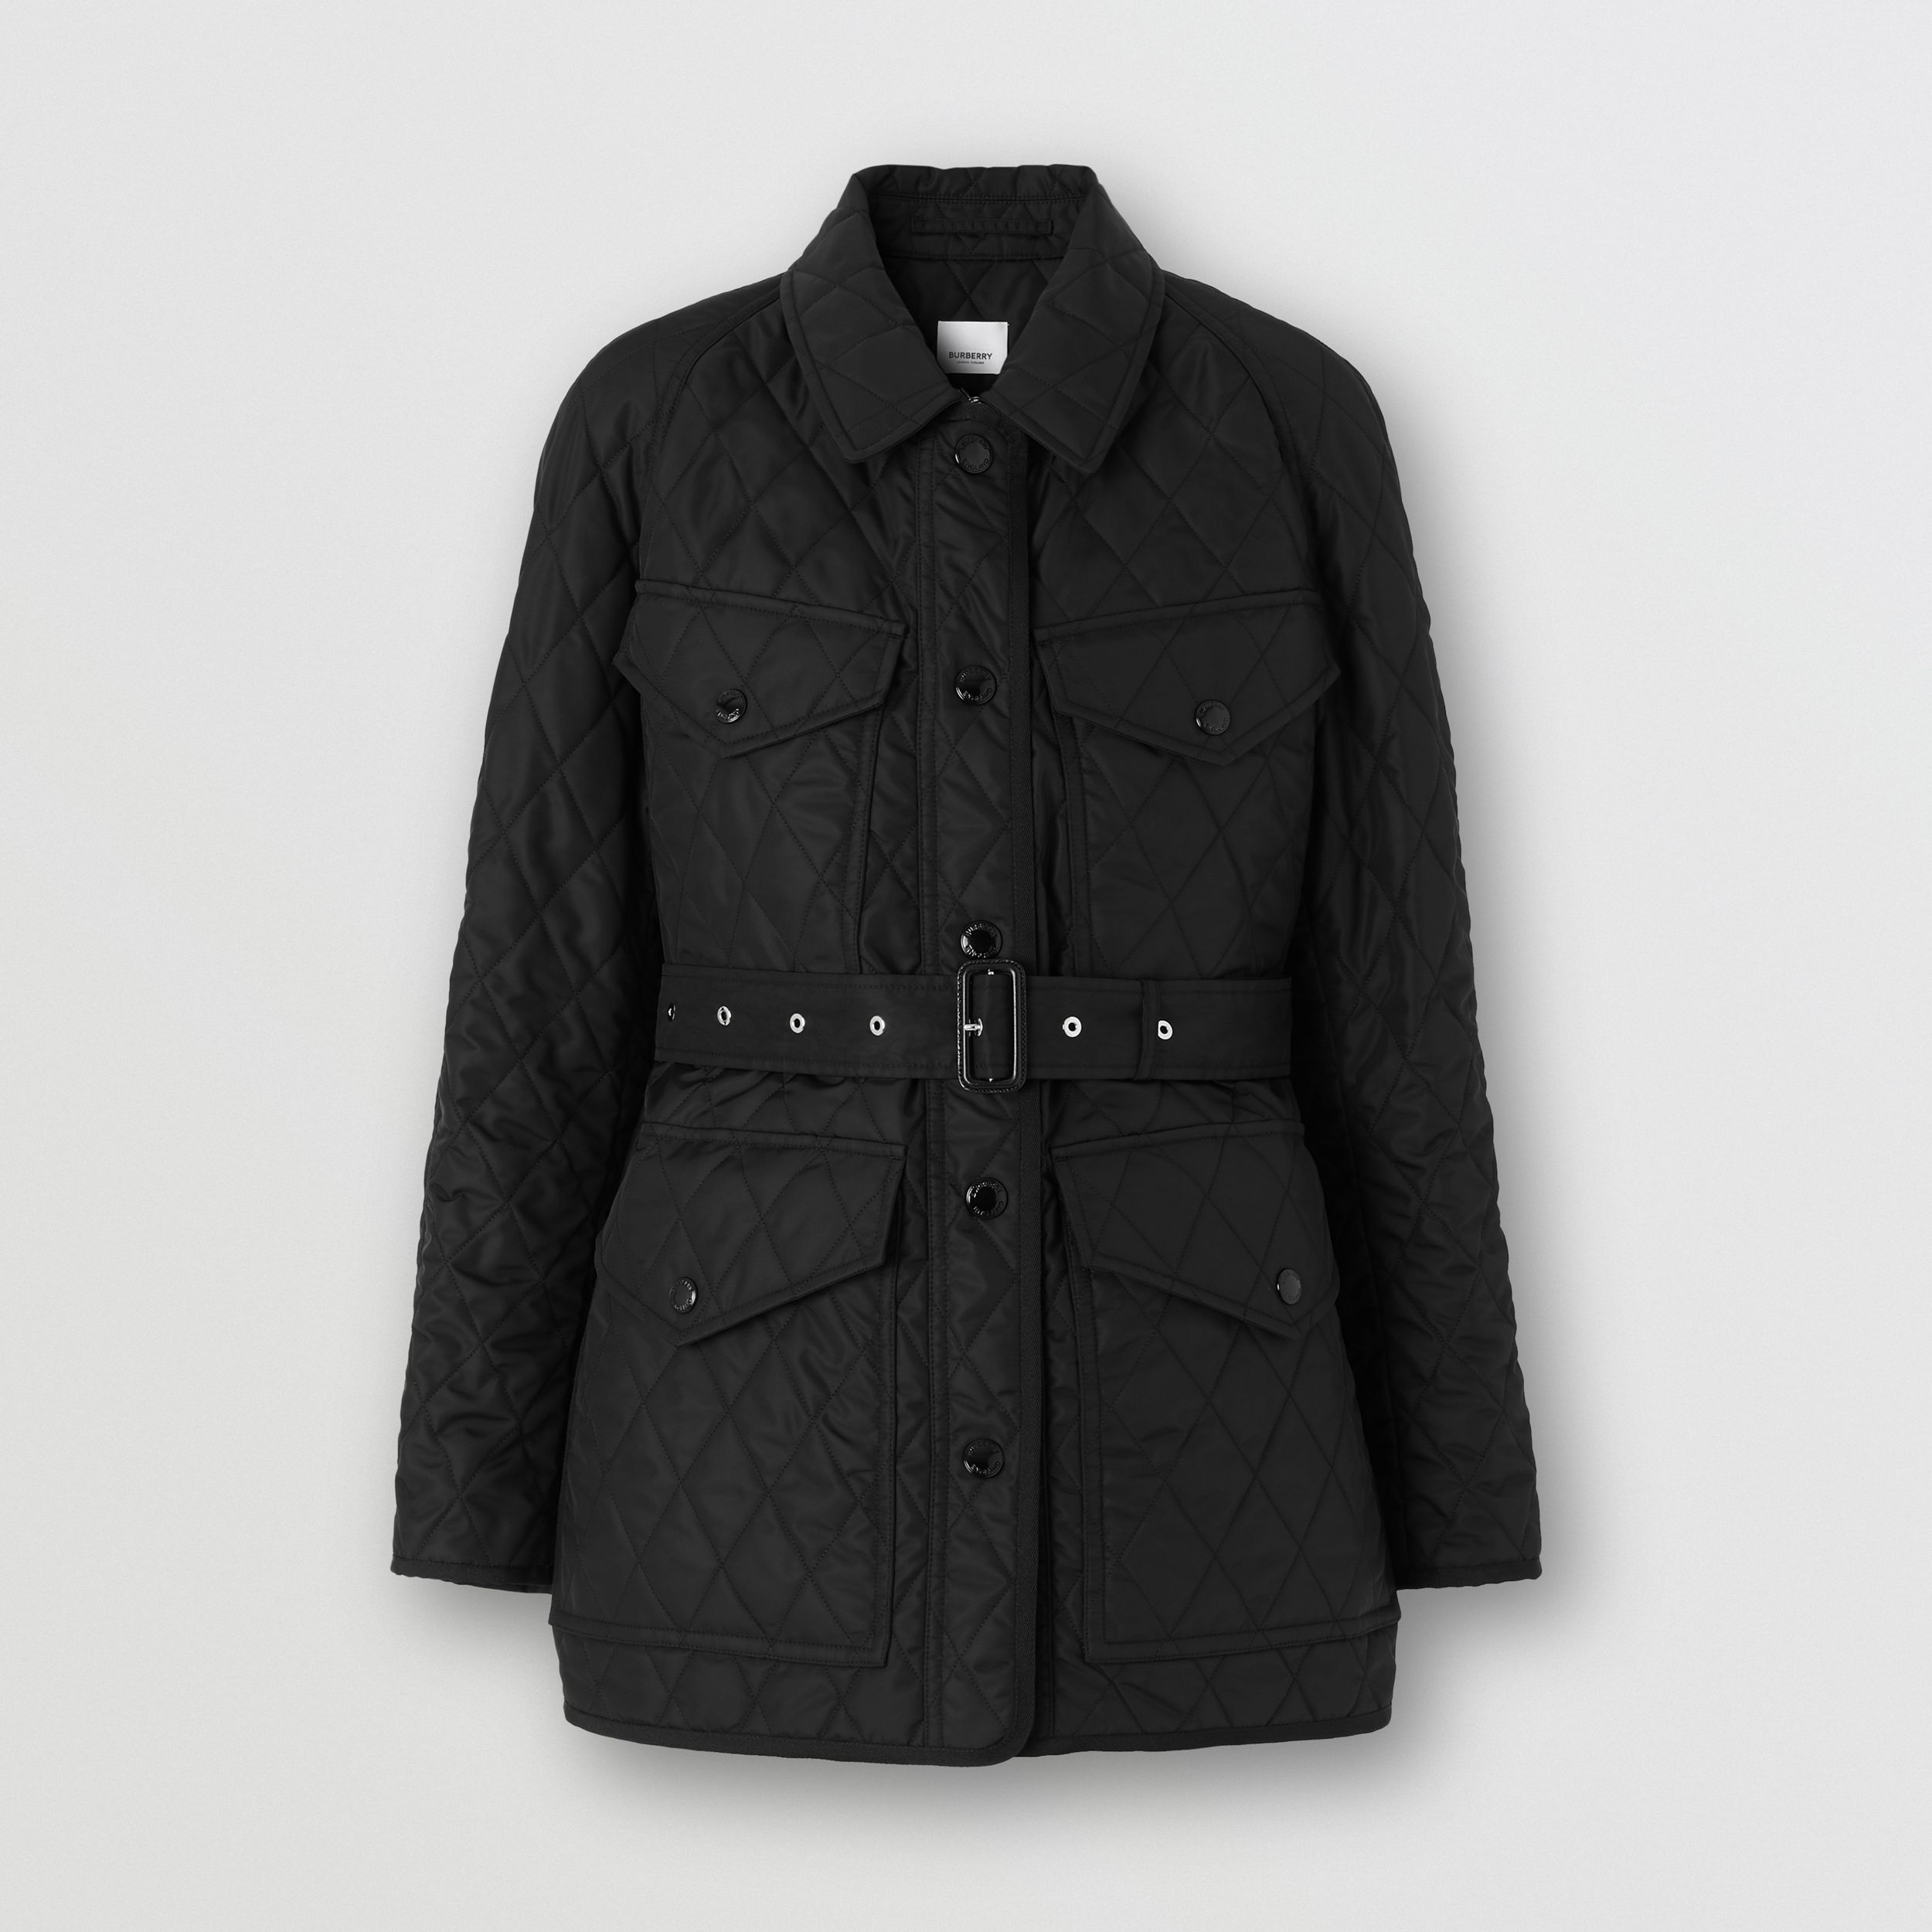 Diamond Quilted Nylon Canvas Field Jacket in Black - Women | Burberry Canada - 4